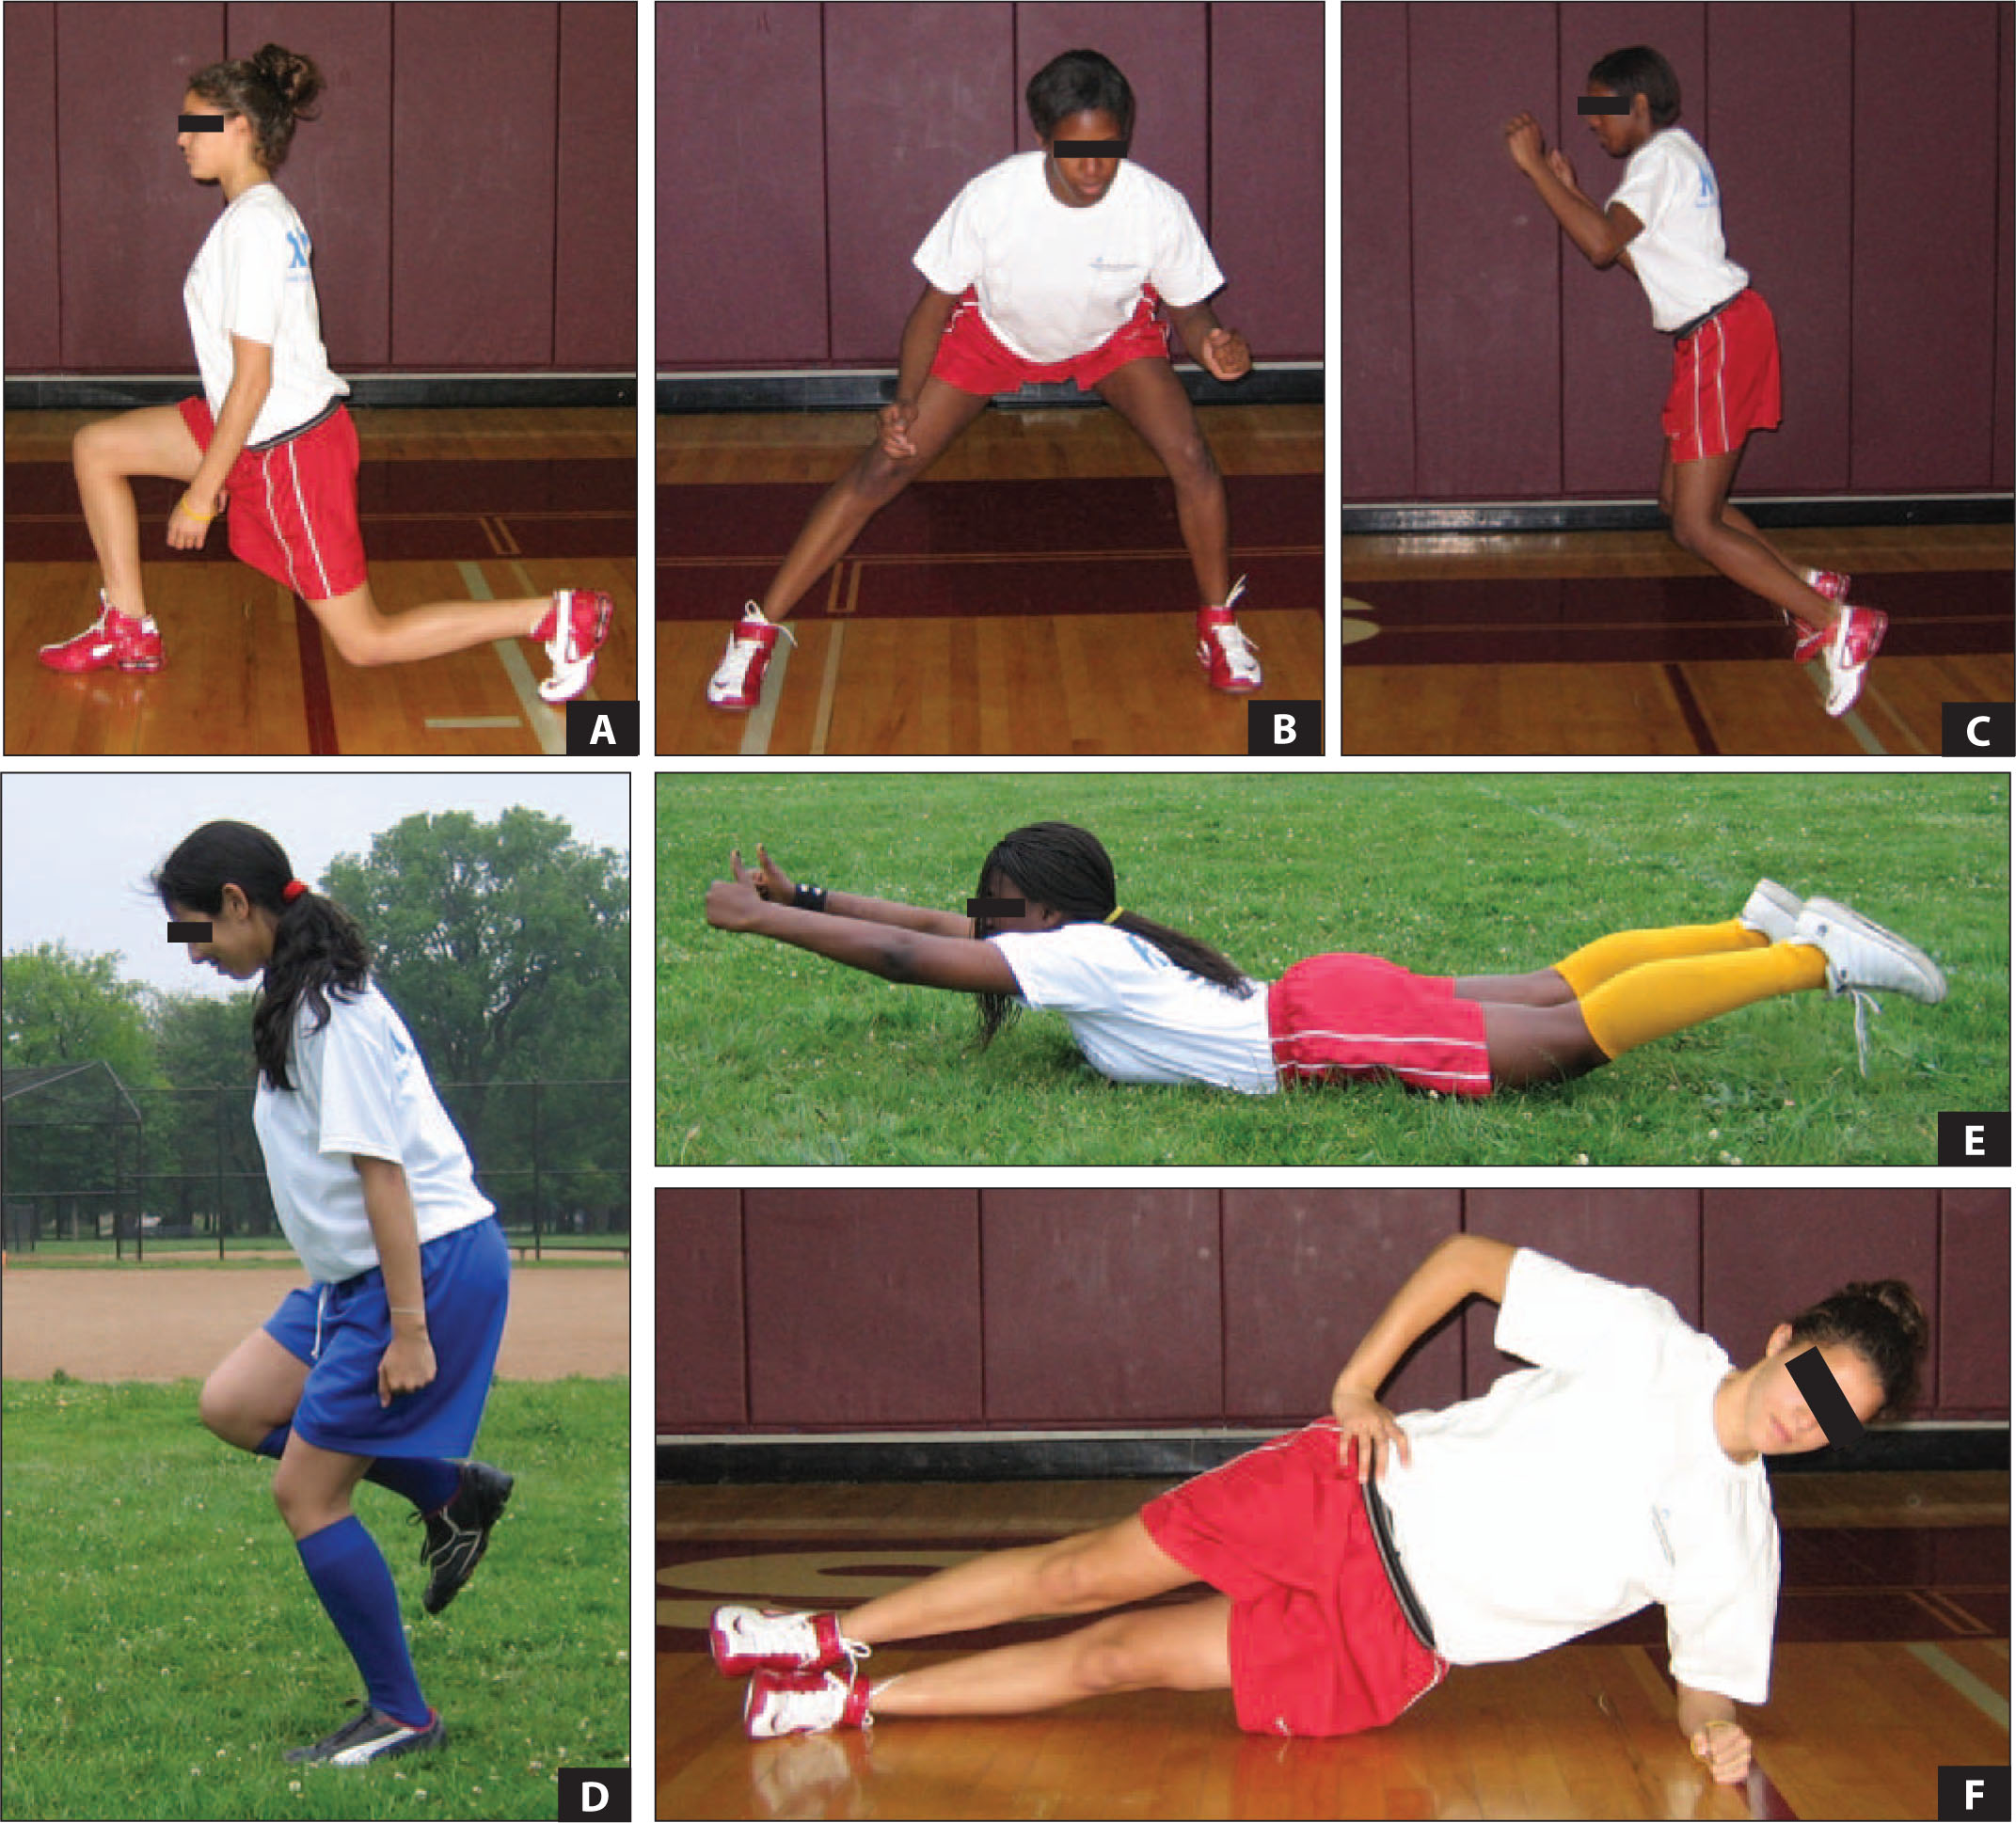 Select Exercises from the Knee Injury Prevention Program (KIPP). A. Forward Lunge. B. Side Lunge. C. Broad Jump. D. Single Leg Jump. E. Prone Lift. F. Side Plank.